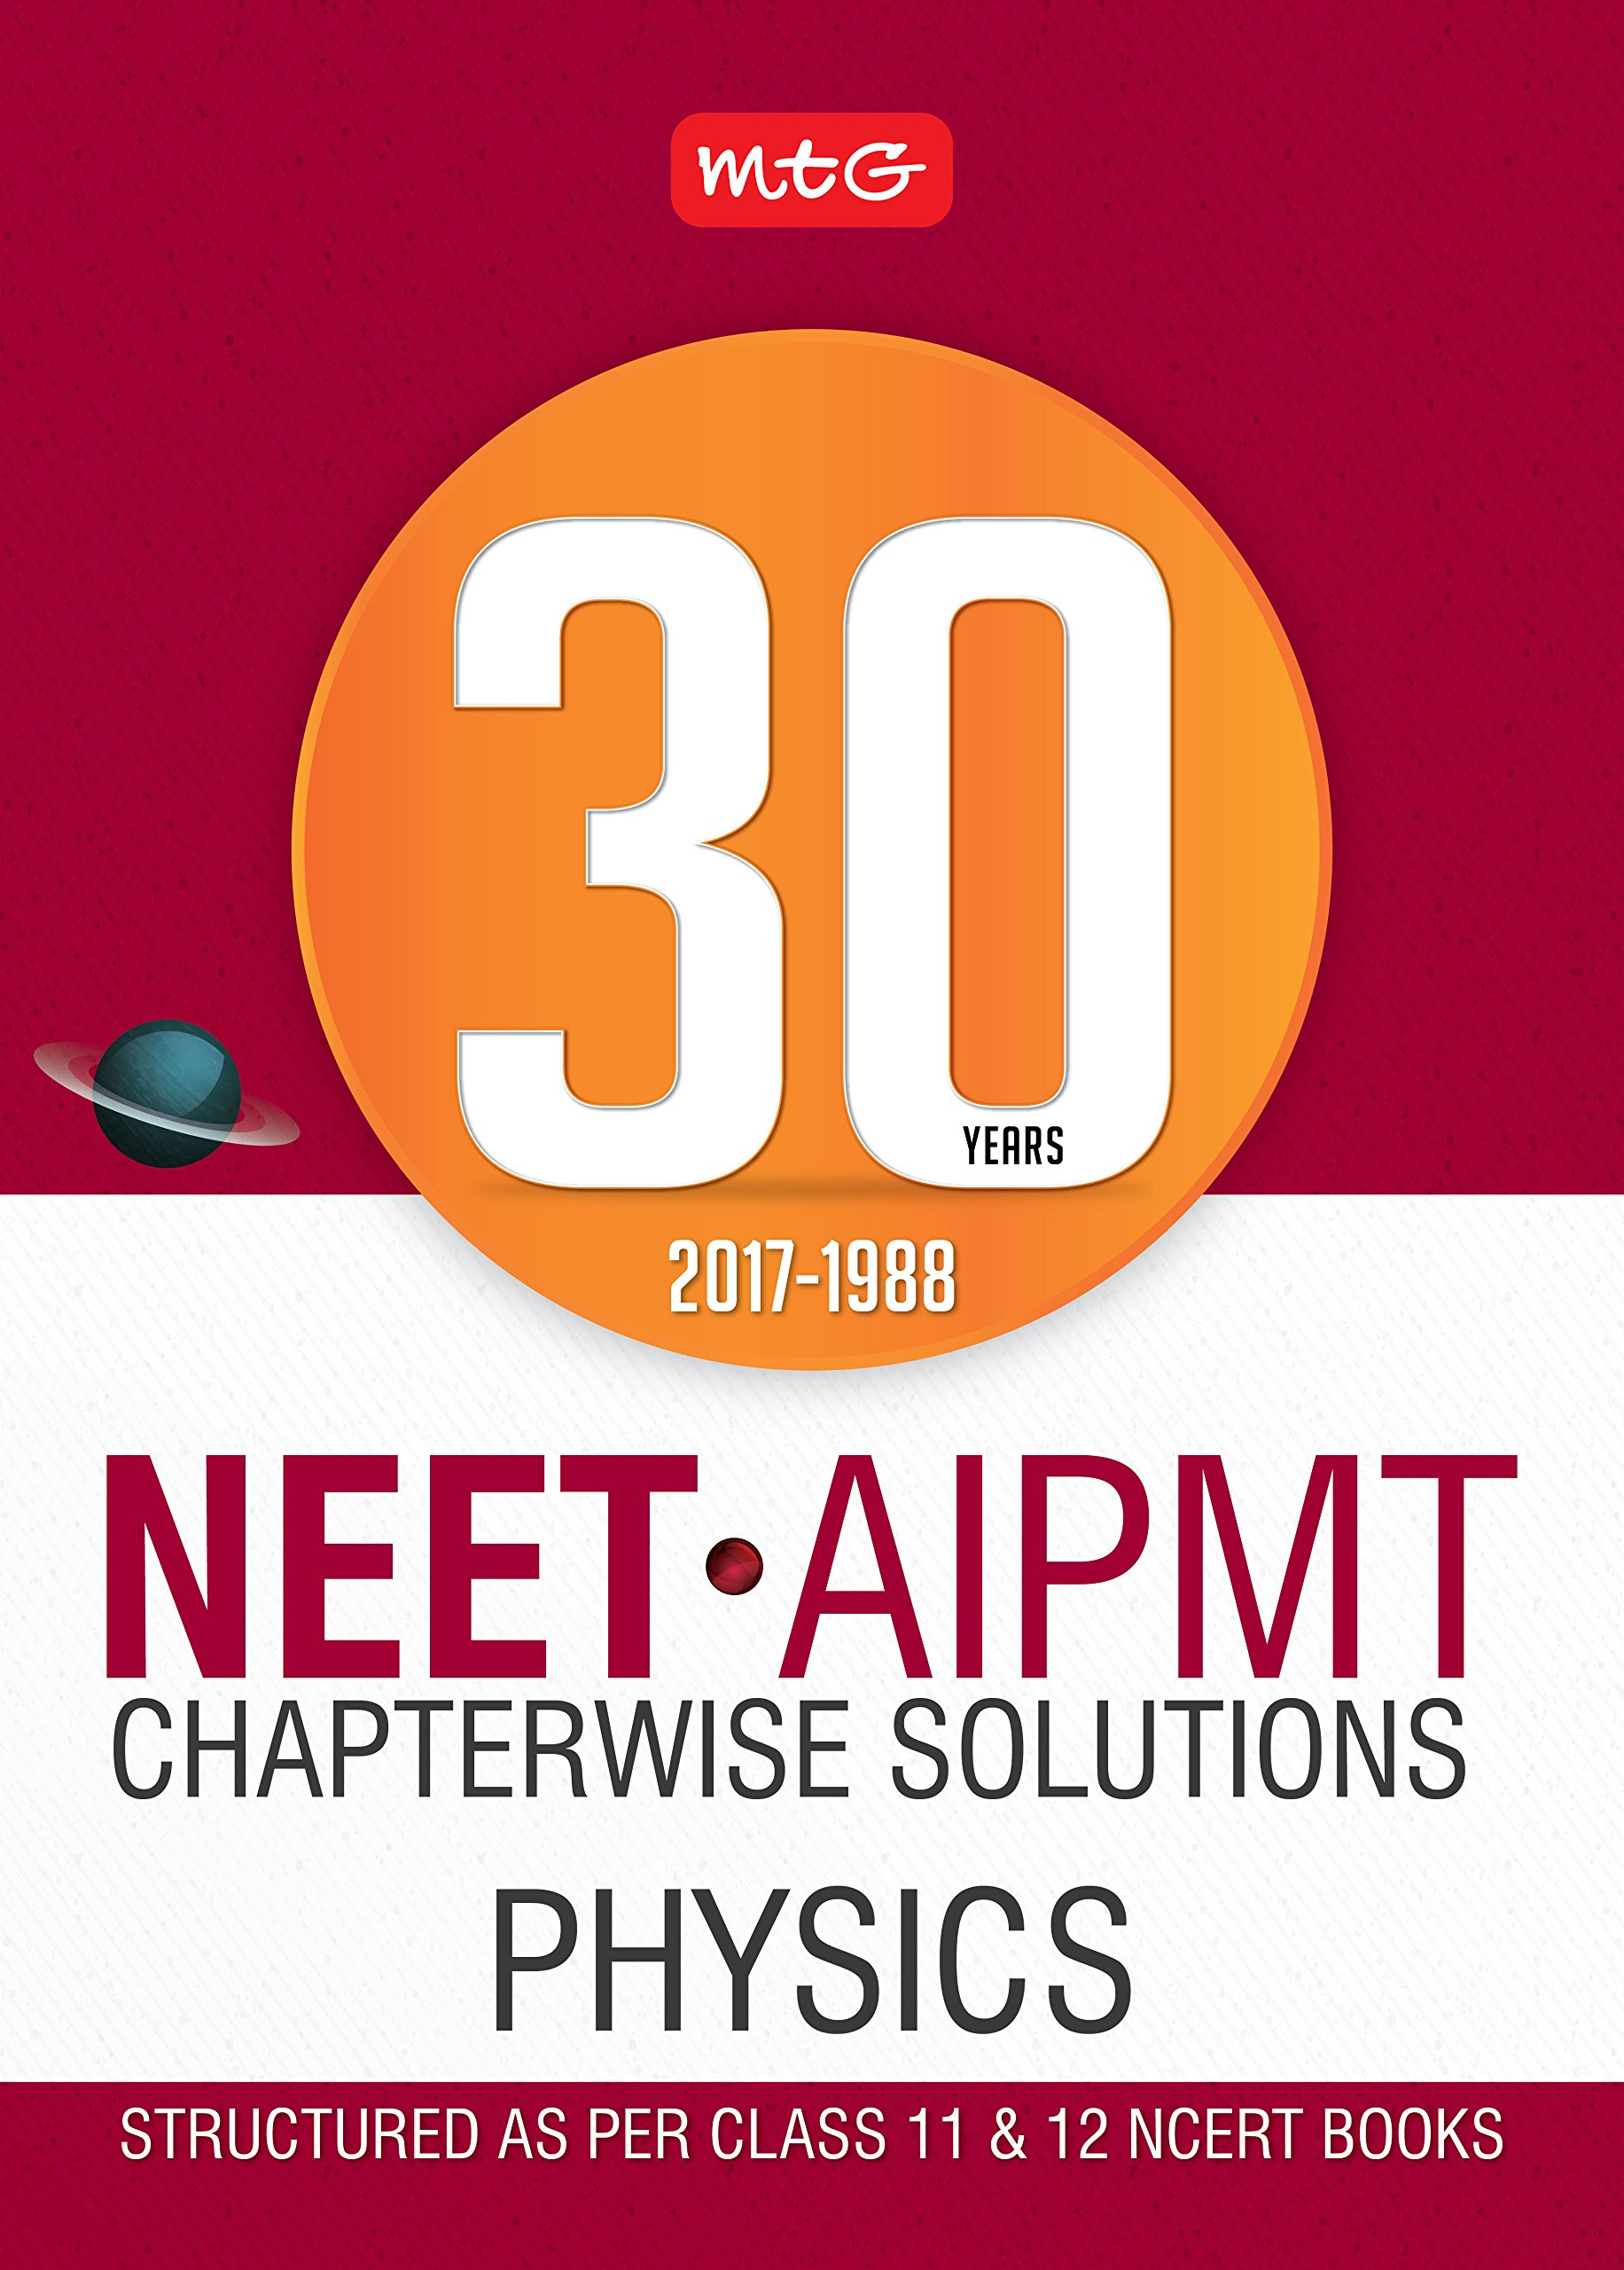 Aiims neet exam books buy books for aiims neet exam 30 years neet aipmt chapterwise solutions physics fandeluxe Gallery